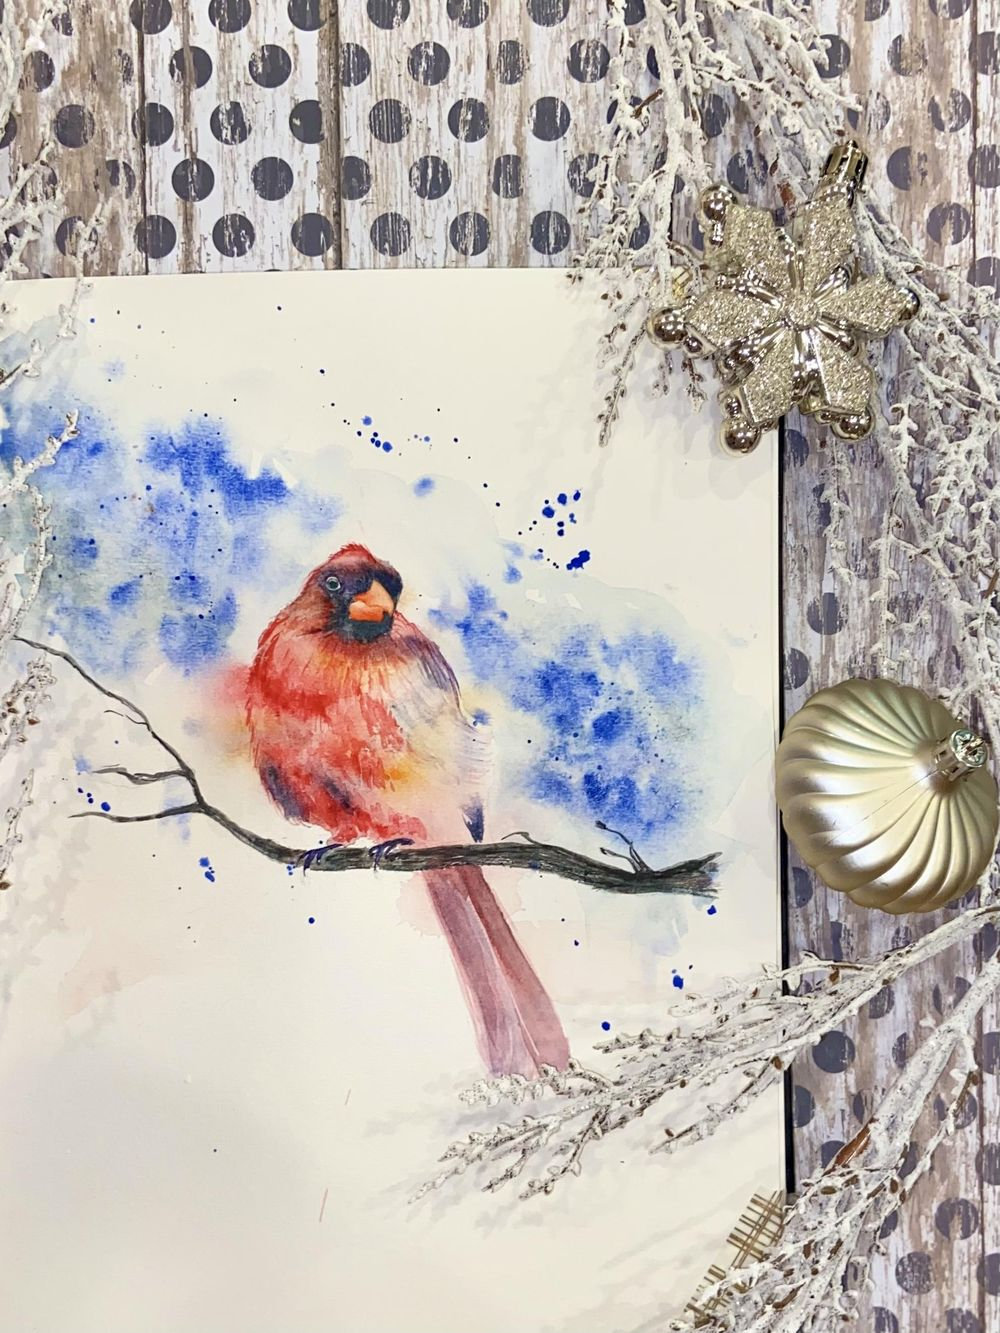 Winter birds - image 2 - student project